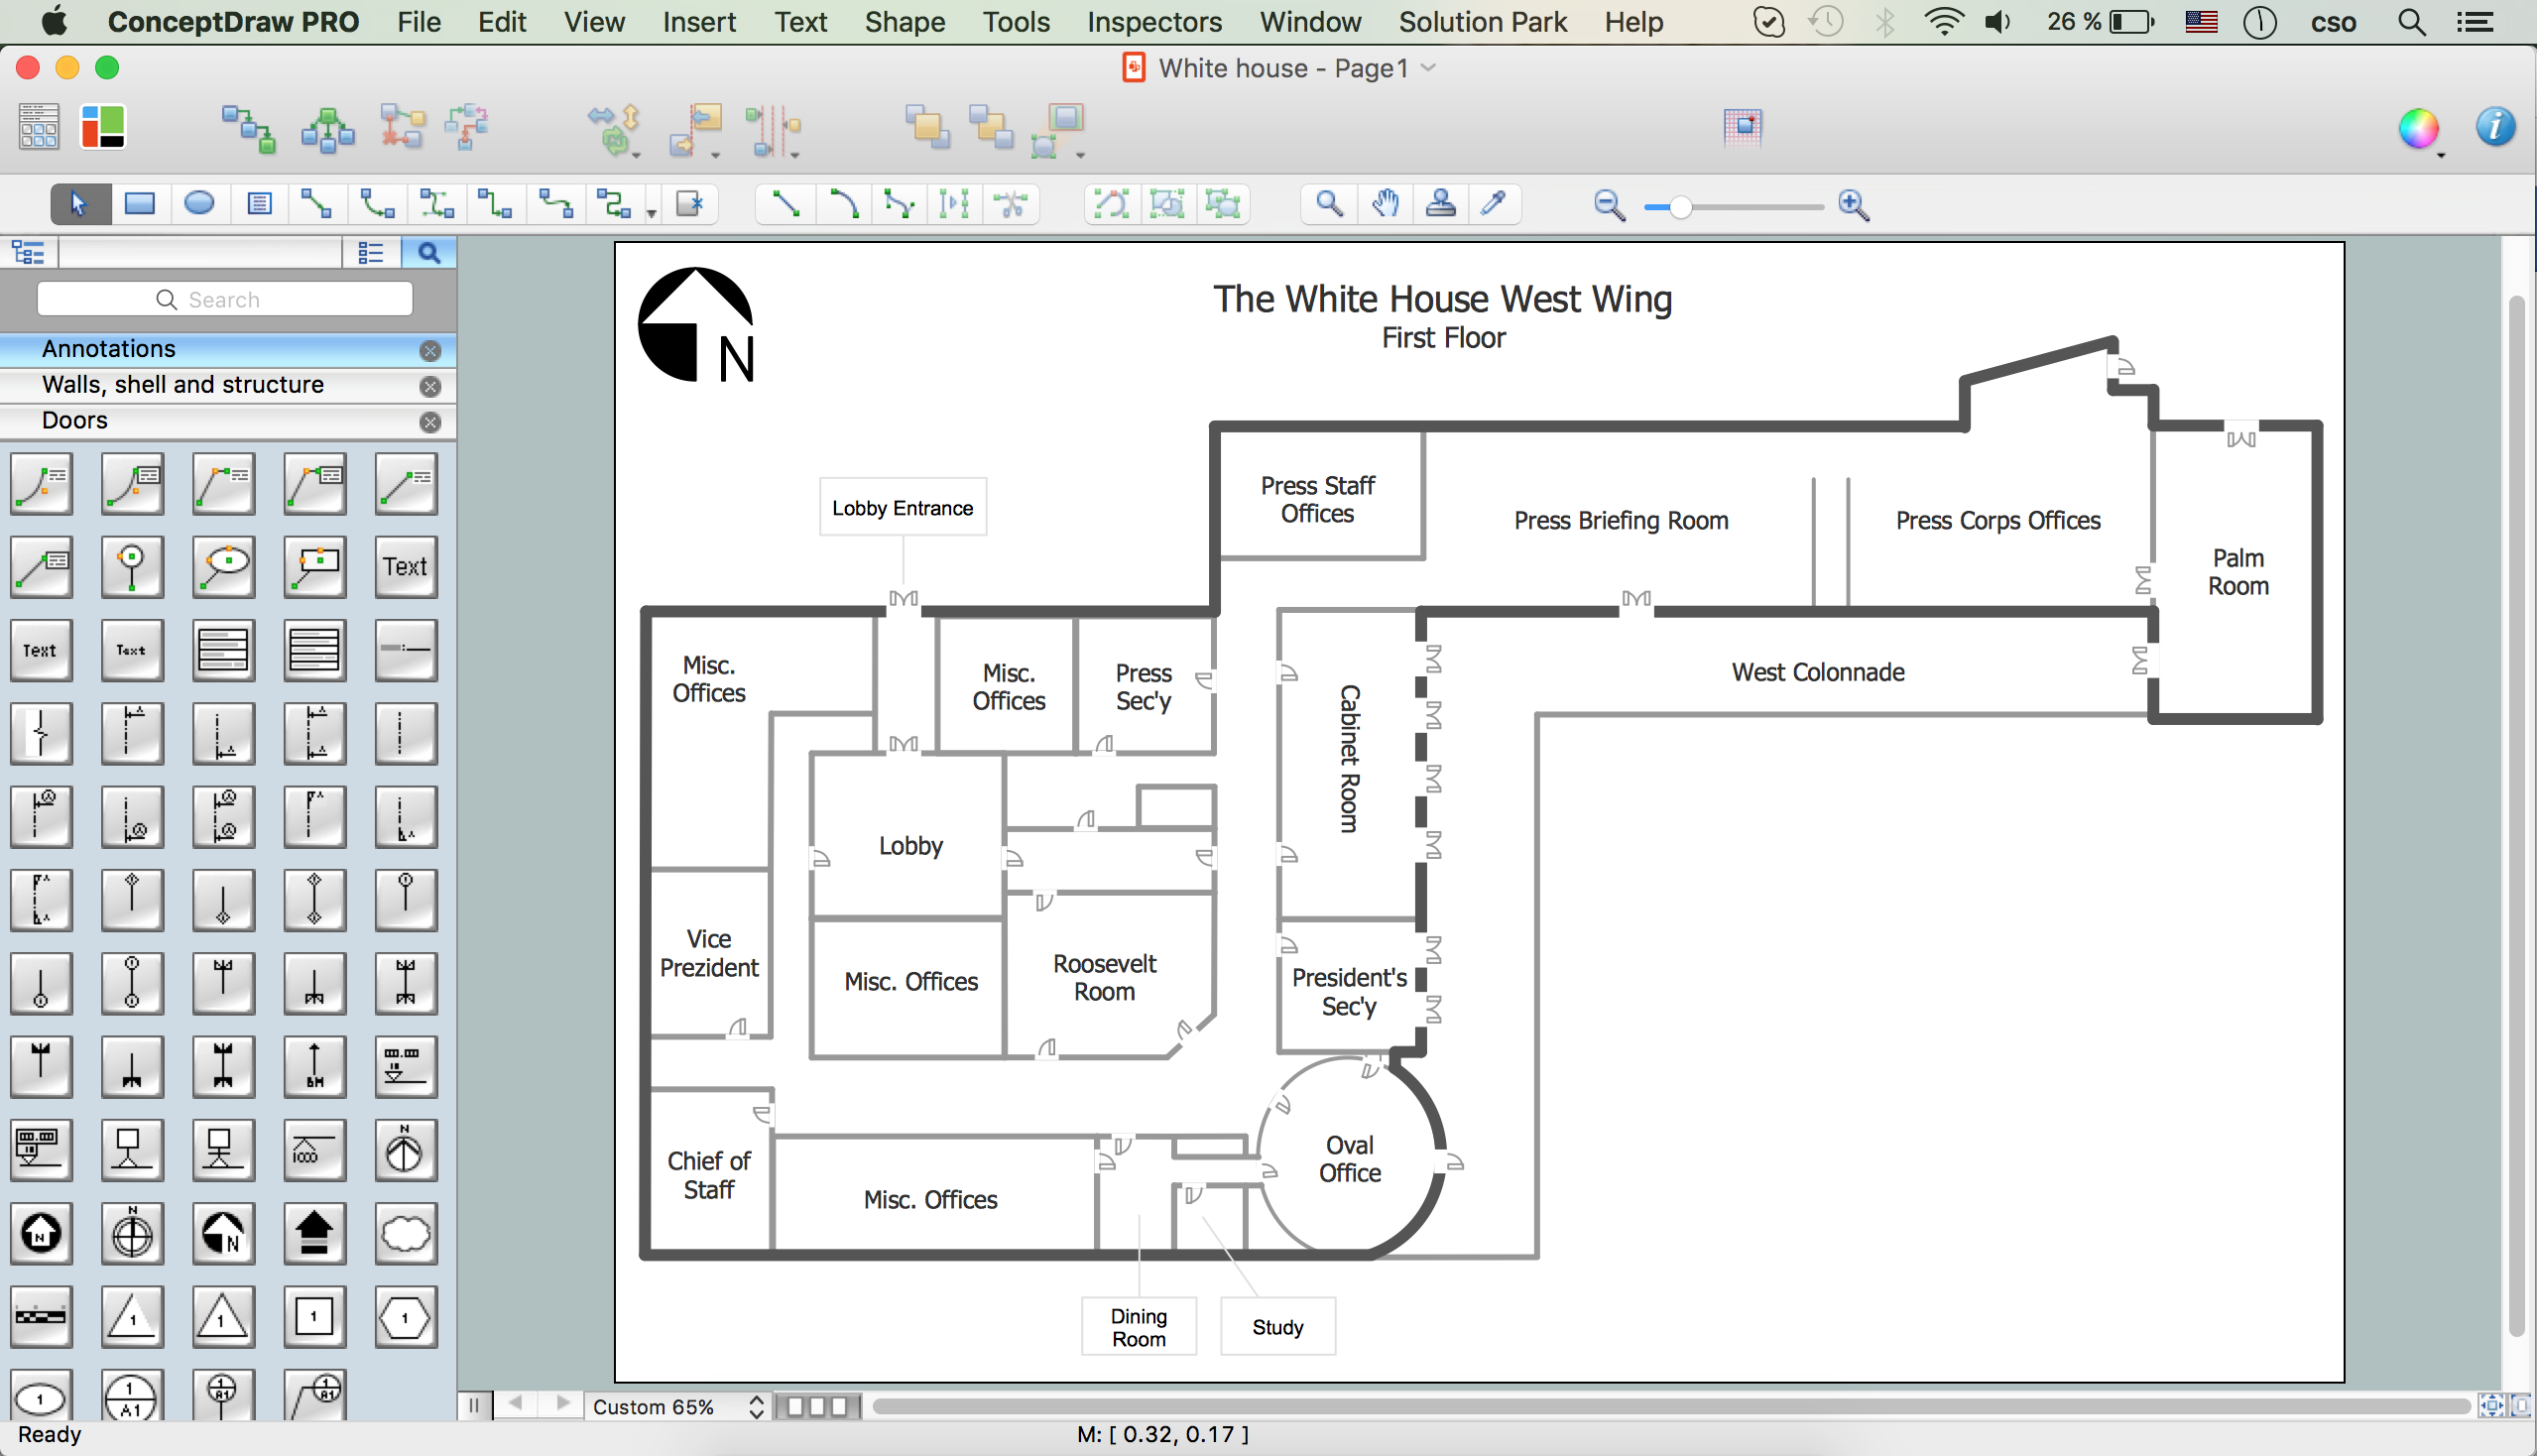 White House Design in ConceptDraw DIAGRAM for Mac